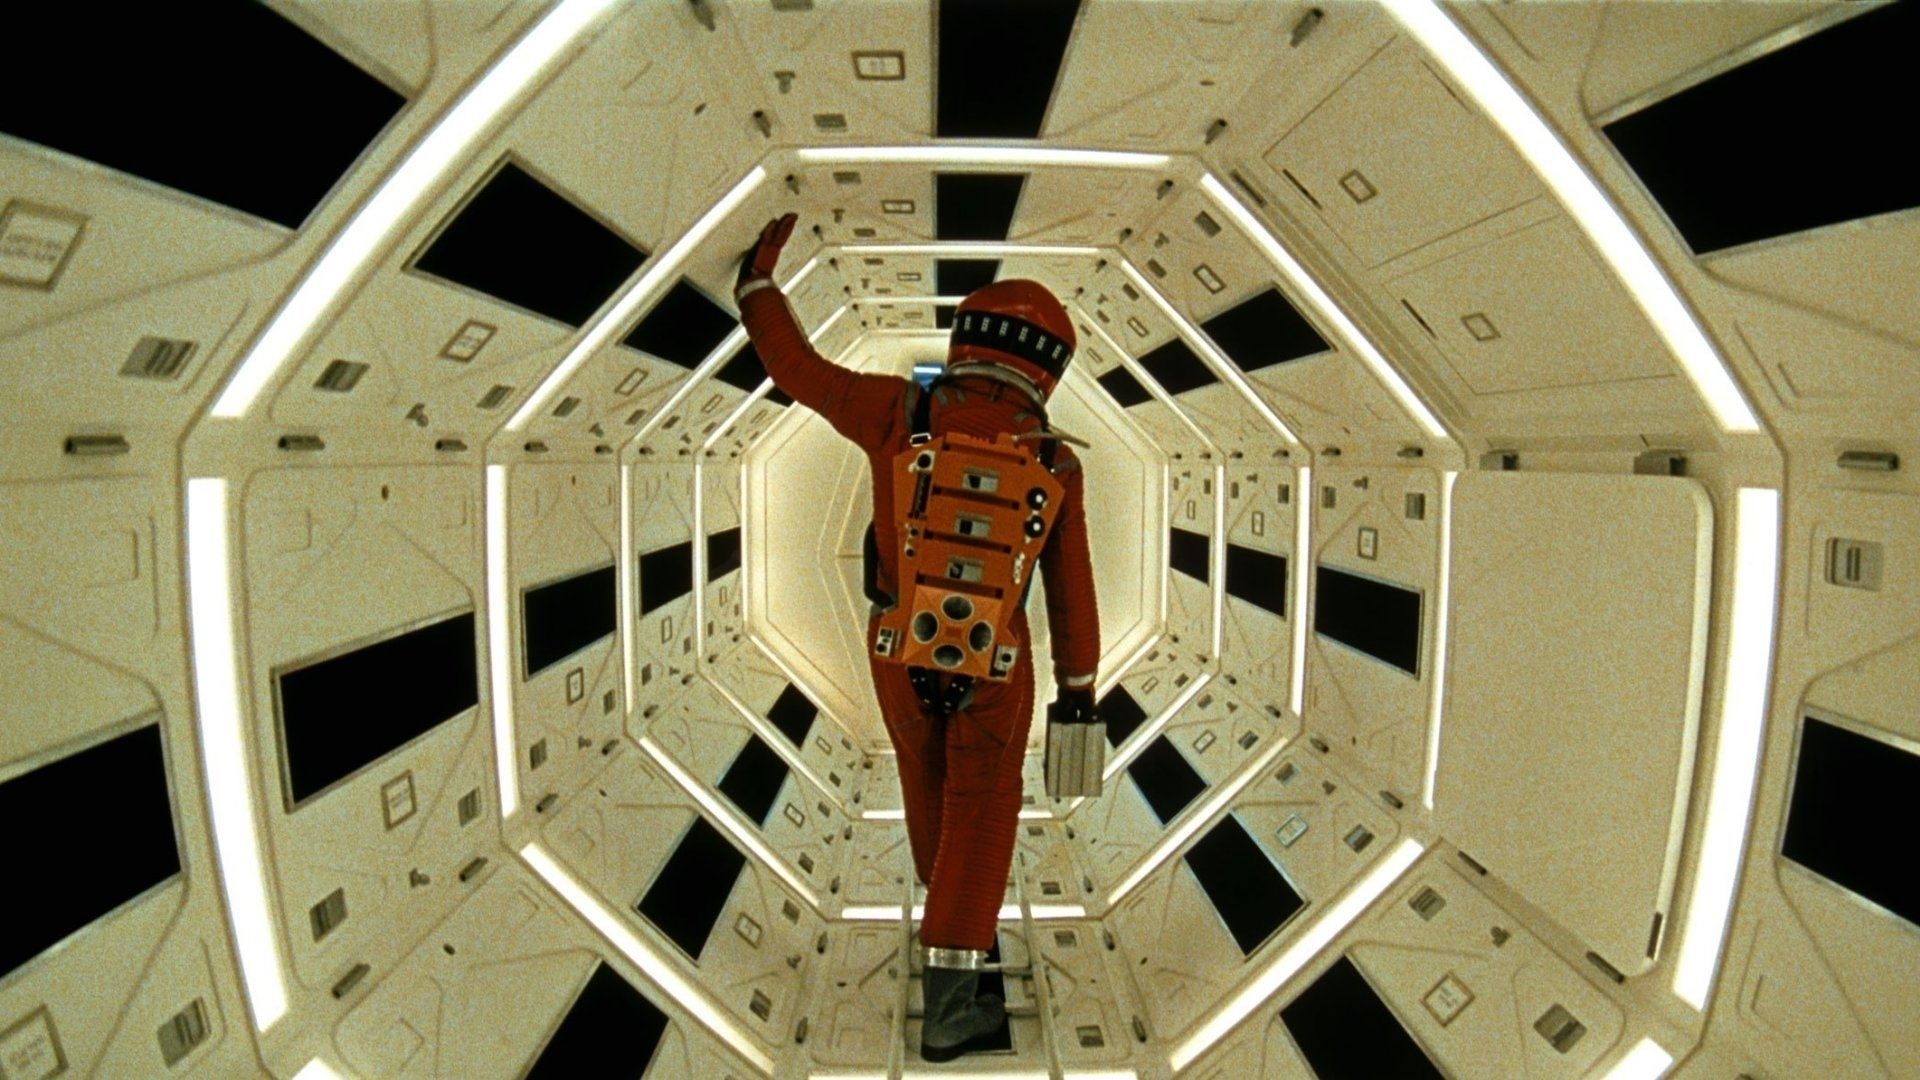 2001: a space odyssey full hd wallpaper and background image